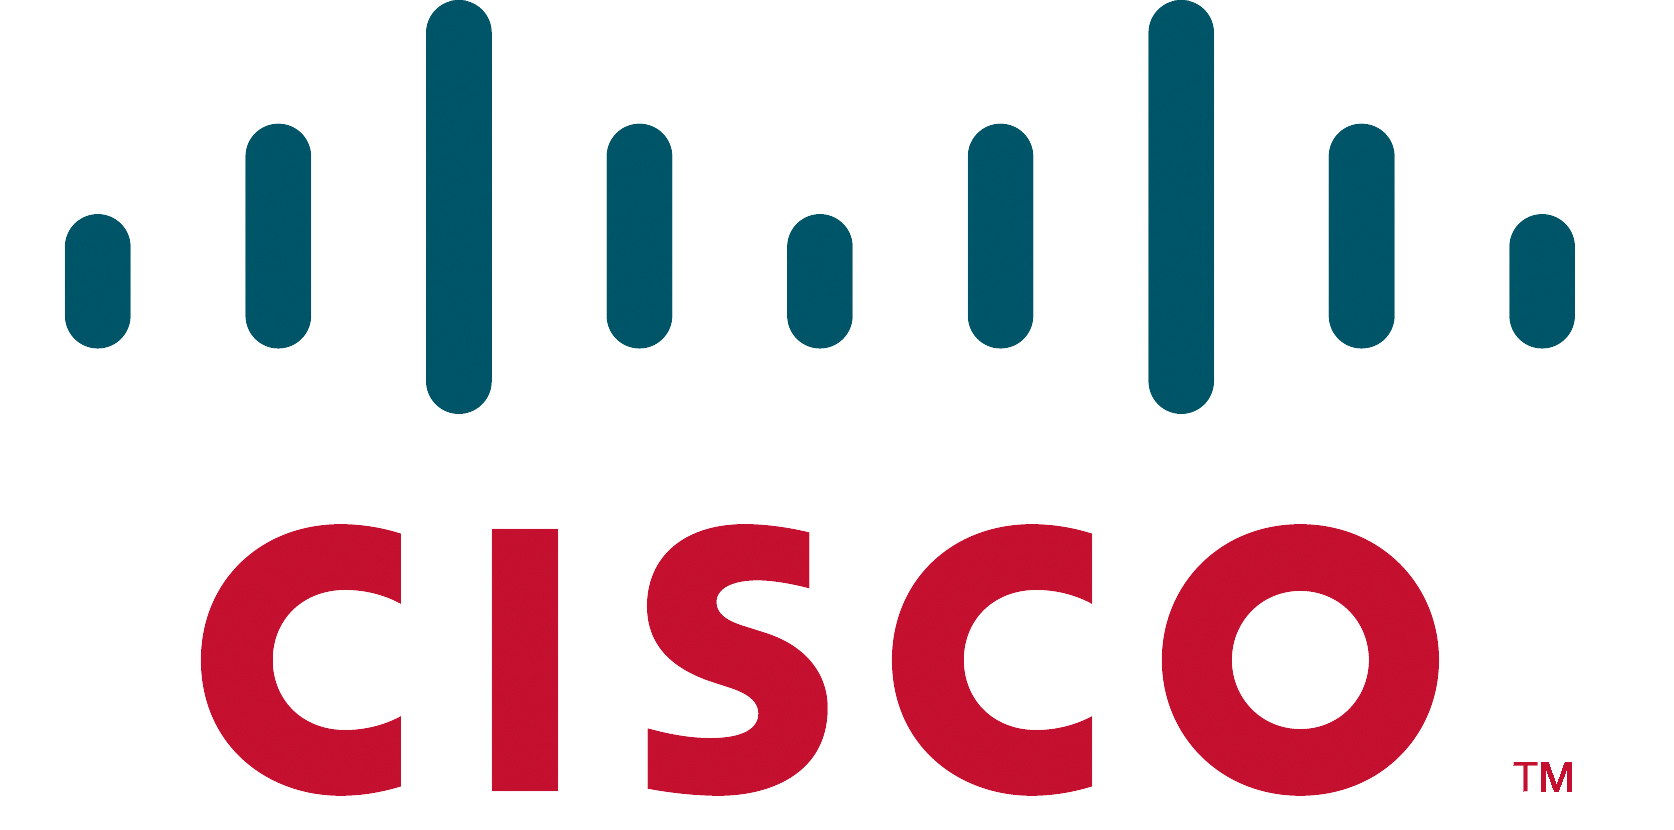 Roteador Cisco 2901 CISCO2901/K9